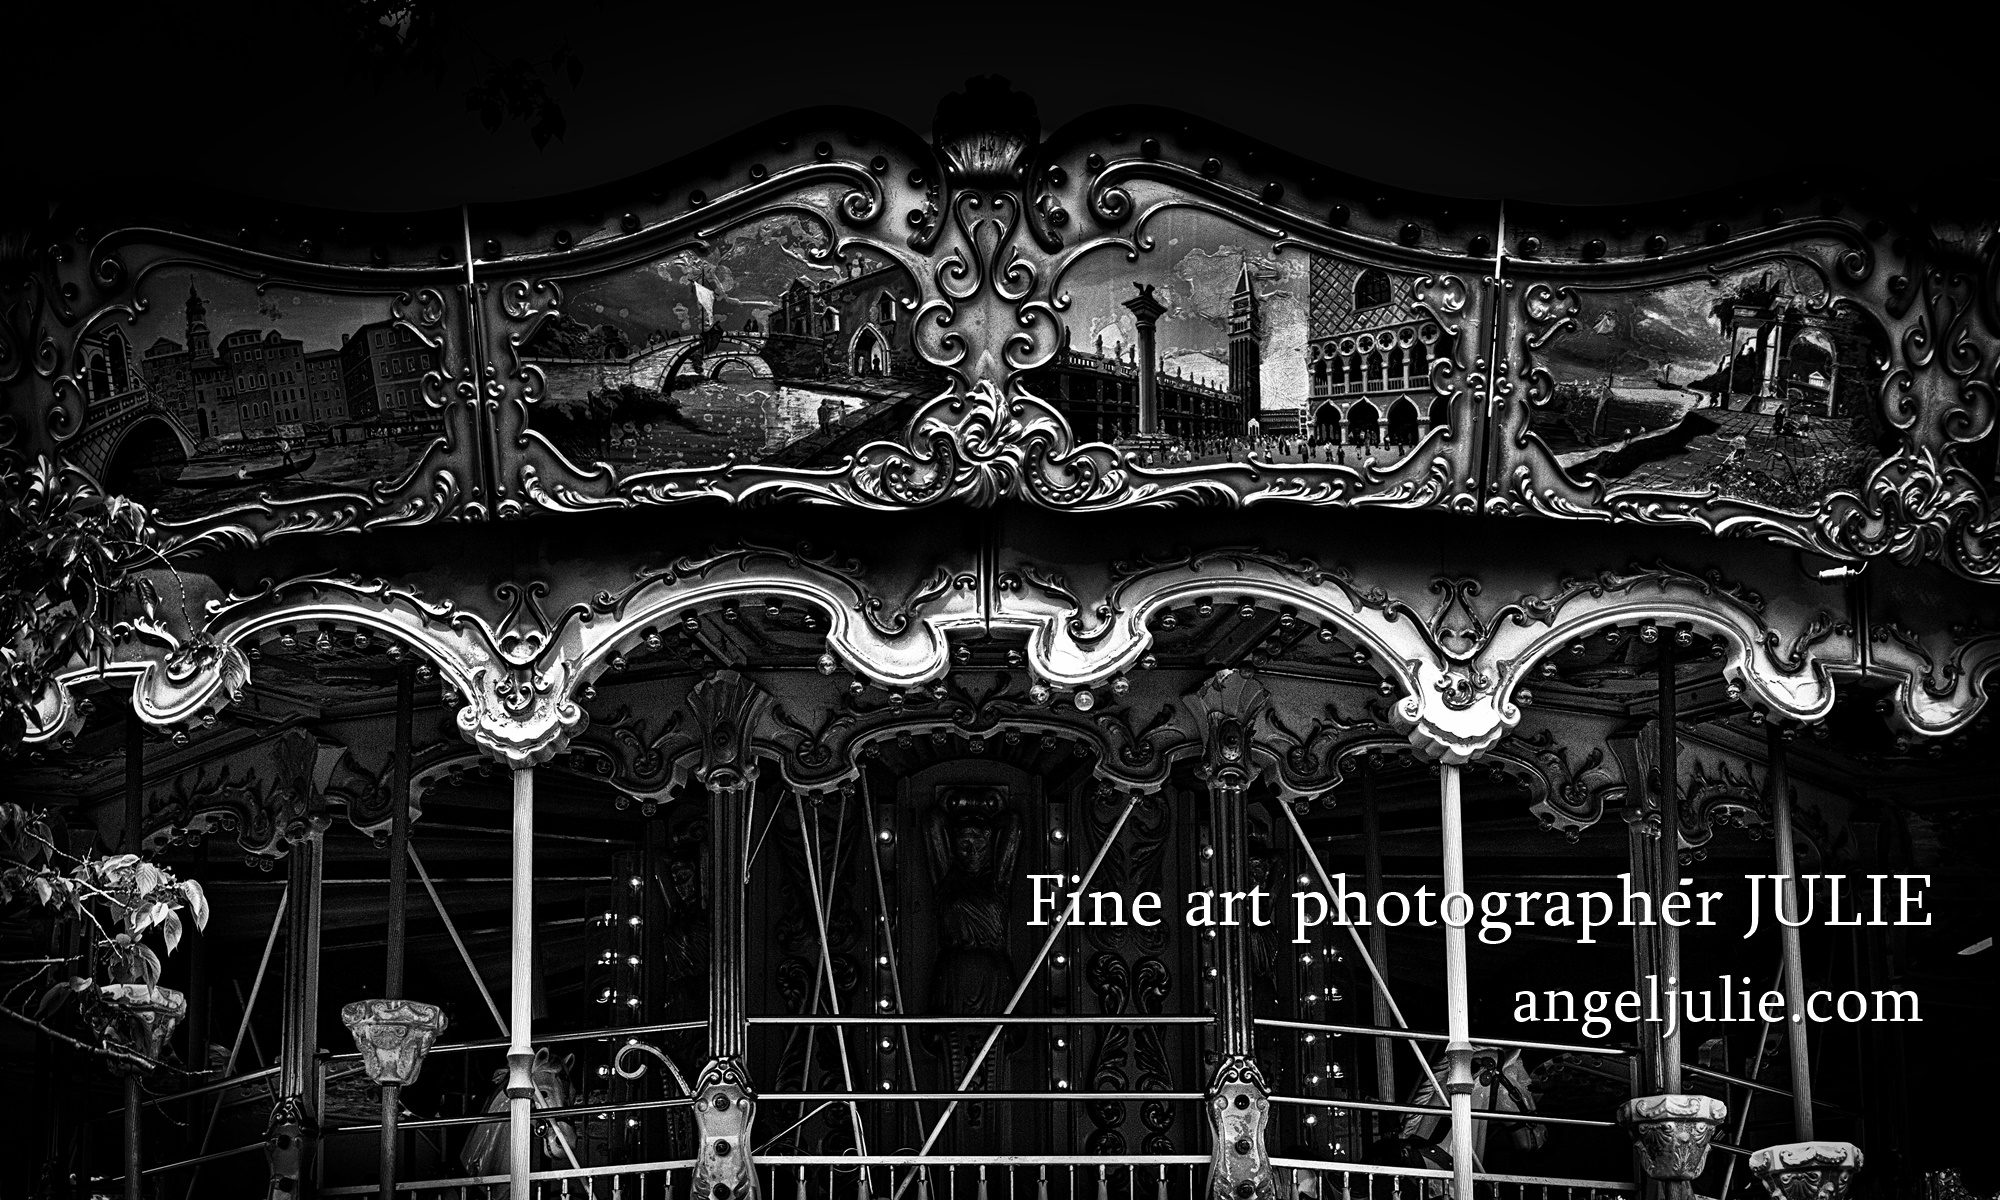 Fine Art Photographer JULIE's Photo Blog・Essay・Novel・Art work description